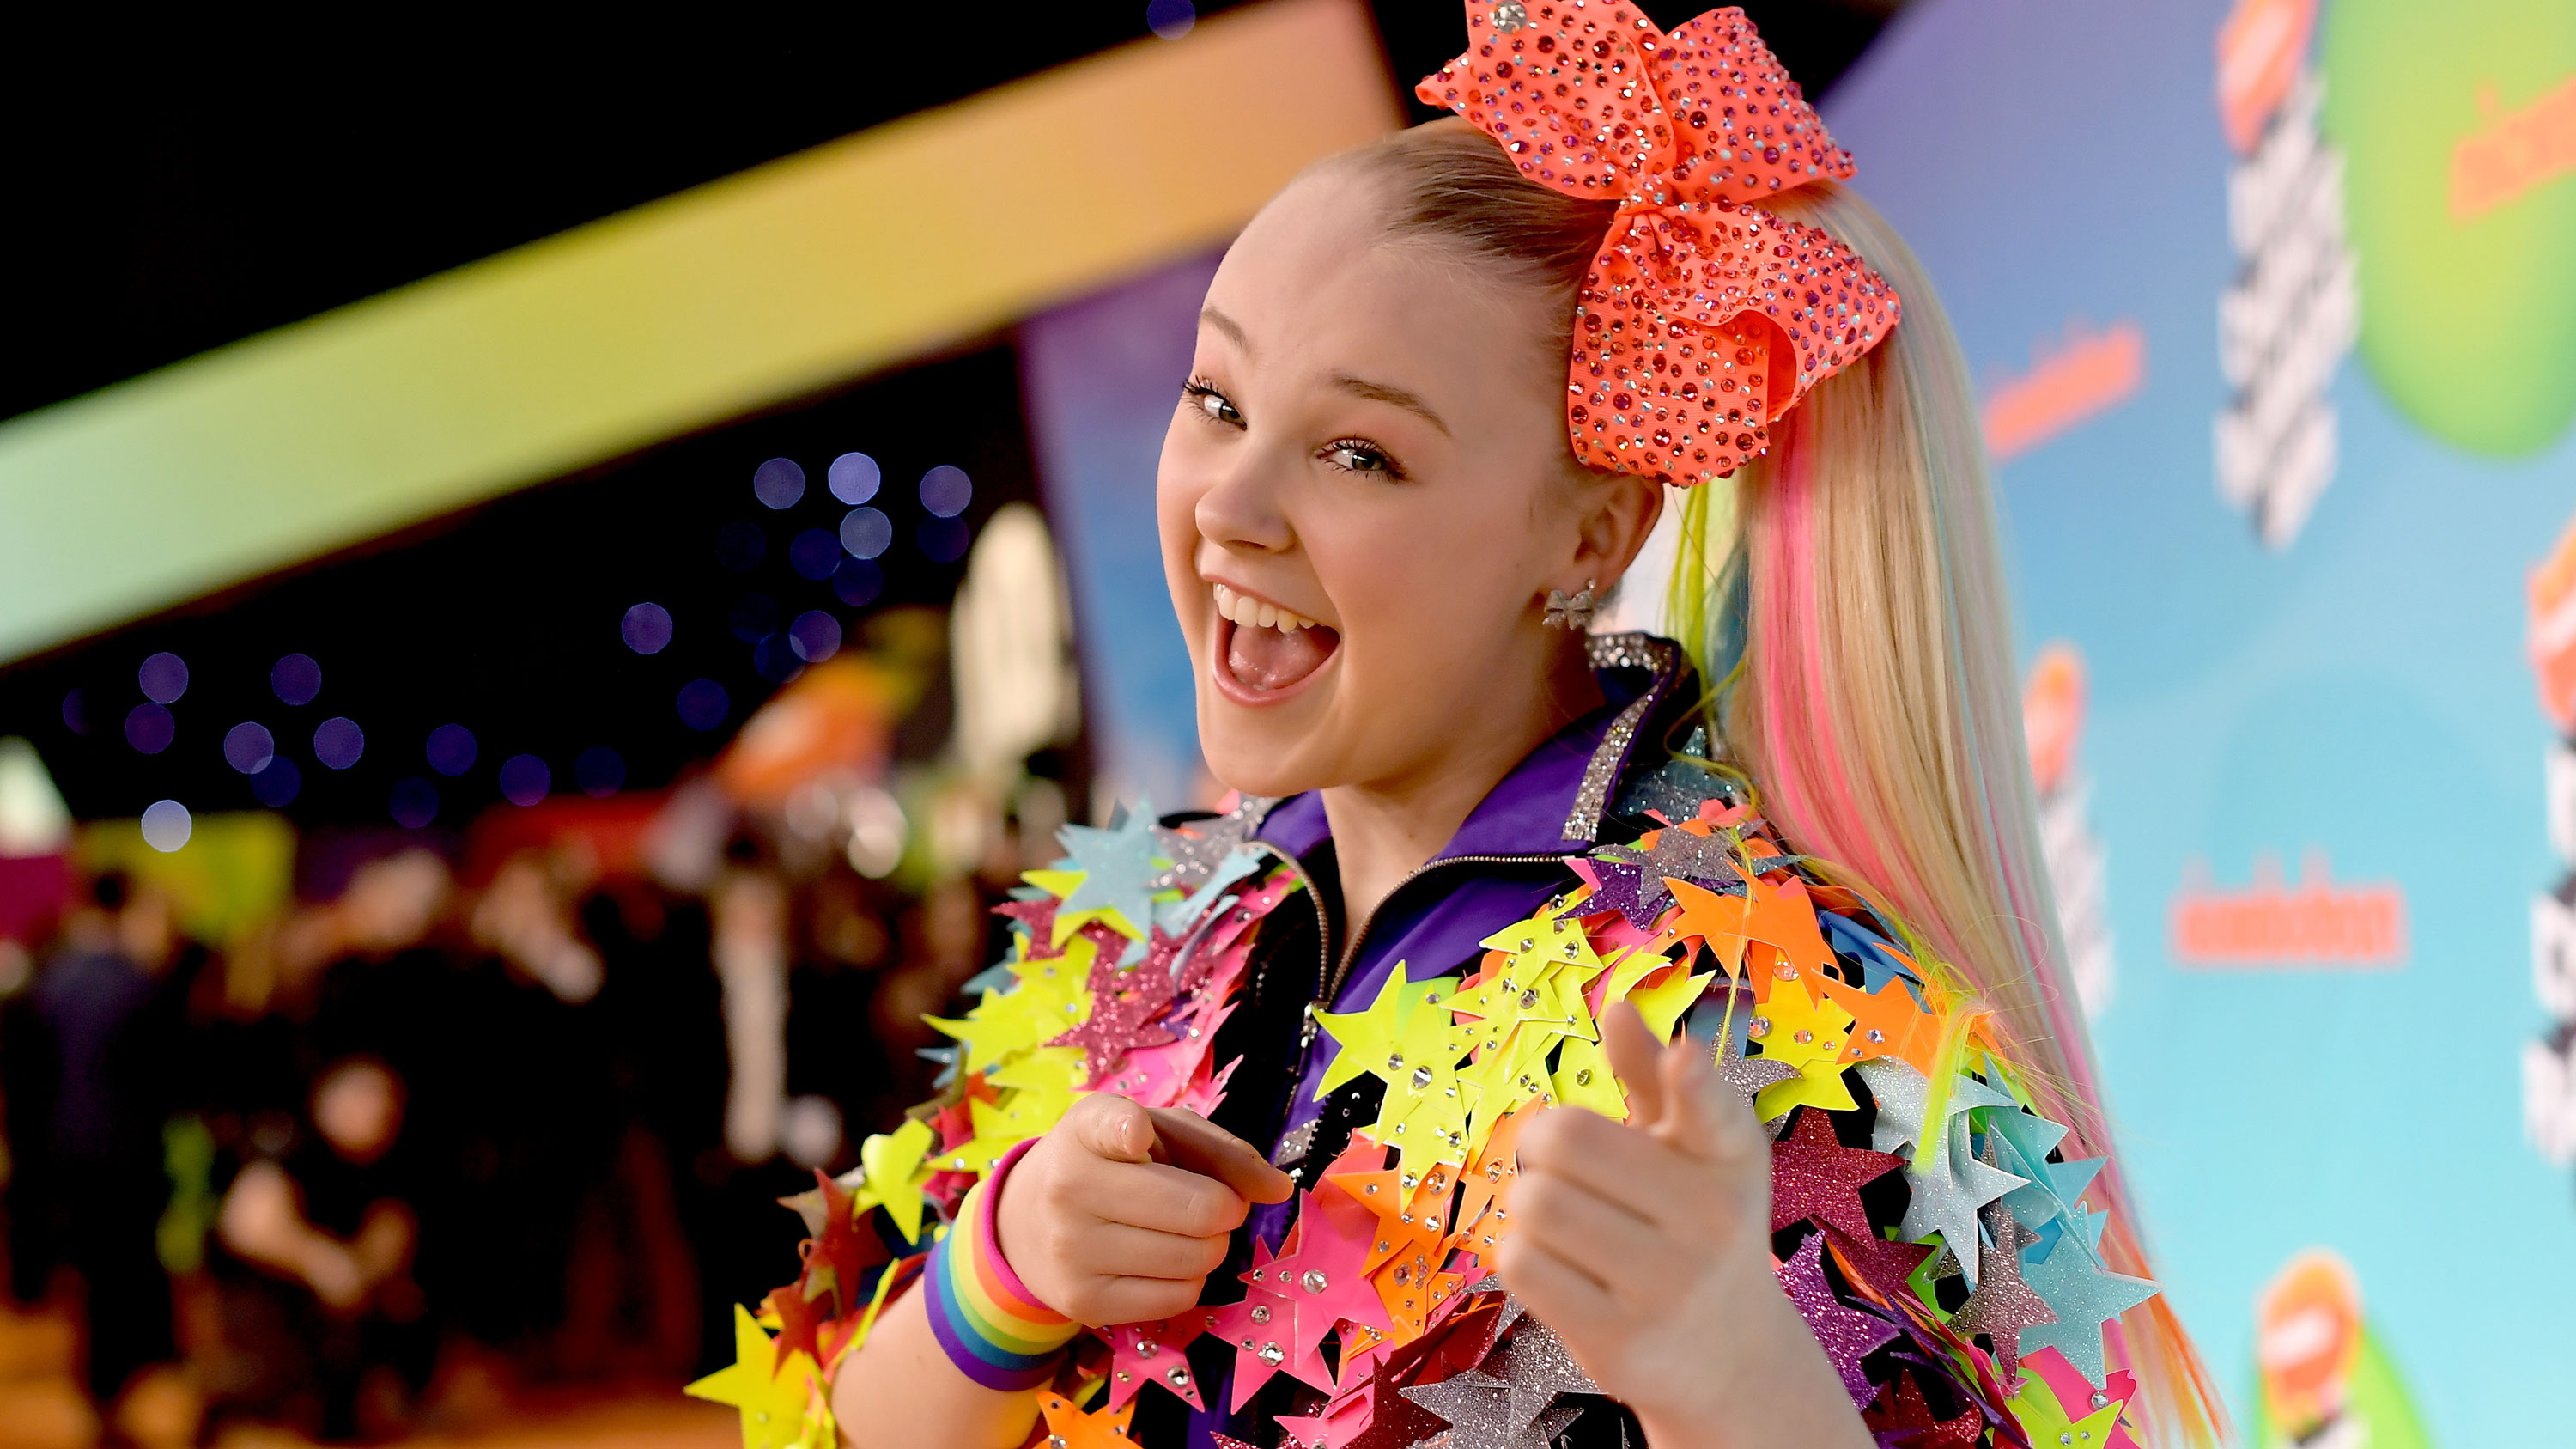 JoJo Siwa on being pansexual and why she feels so happy